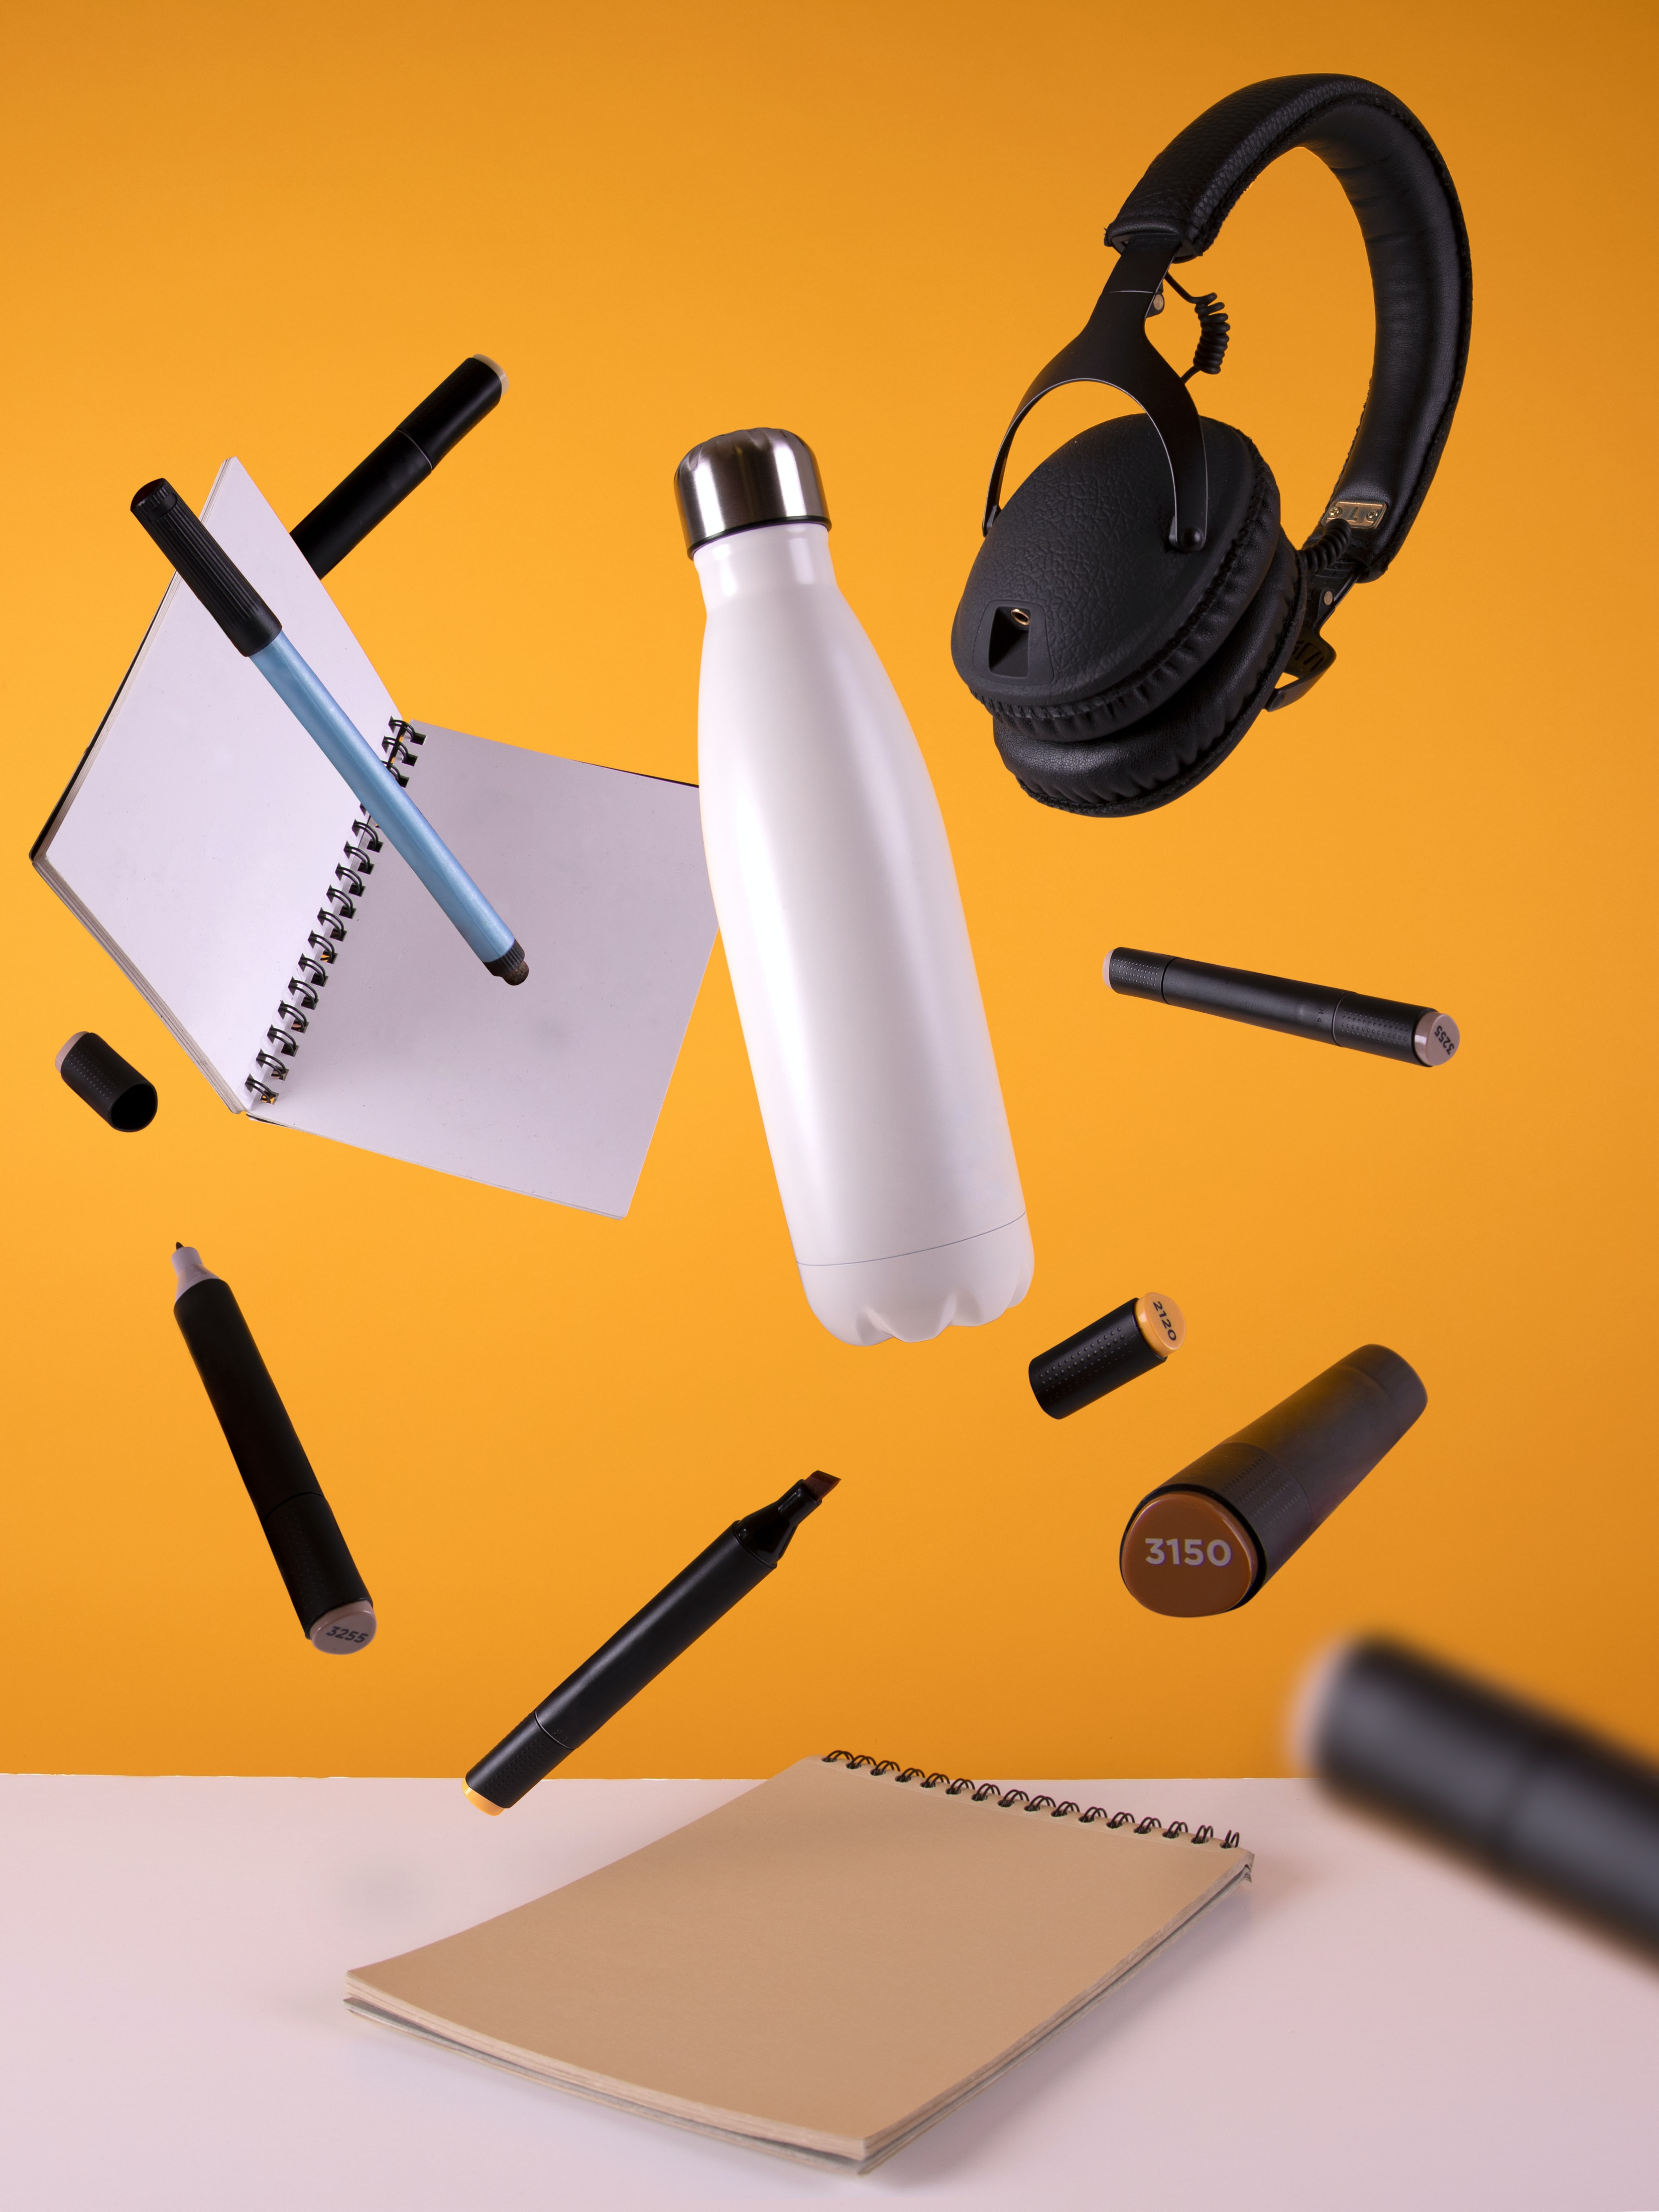 Image Credit - KOBU Agency via Unsplash. Image of floating pens, sketchbooks and headphones with a yellow background